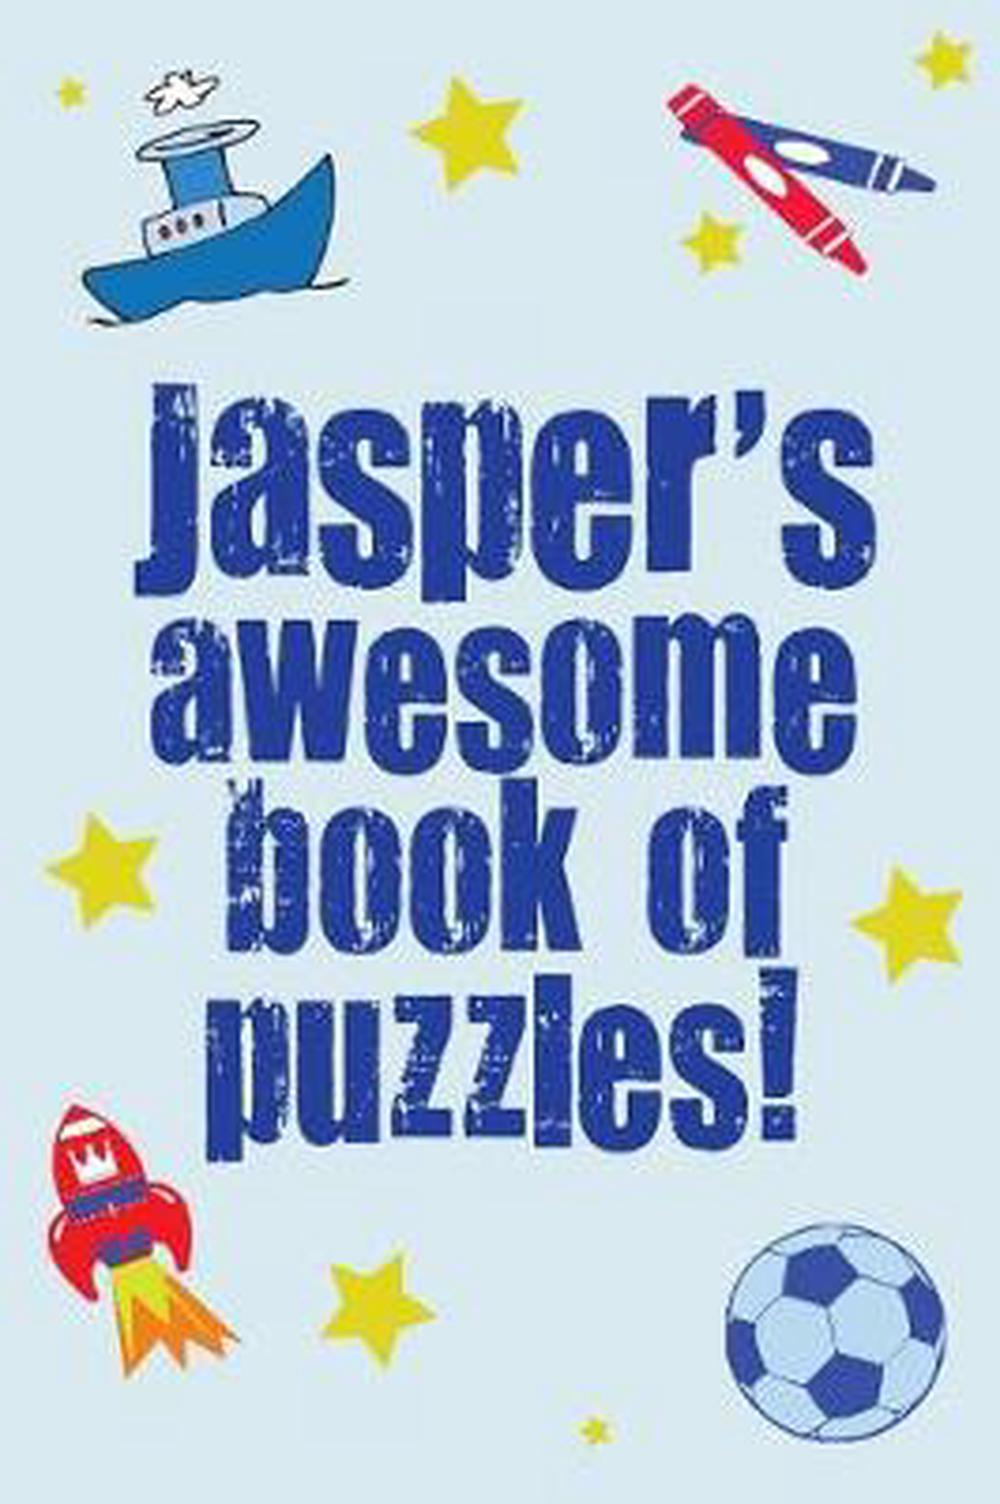 Jasper's Awesome Book of Puzzles!: Children's Puzzle Book Co